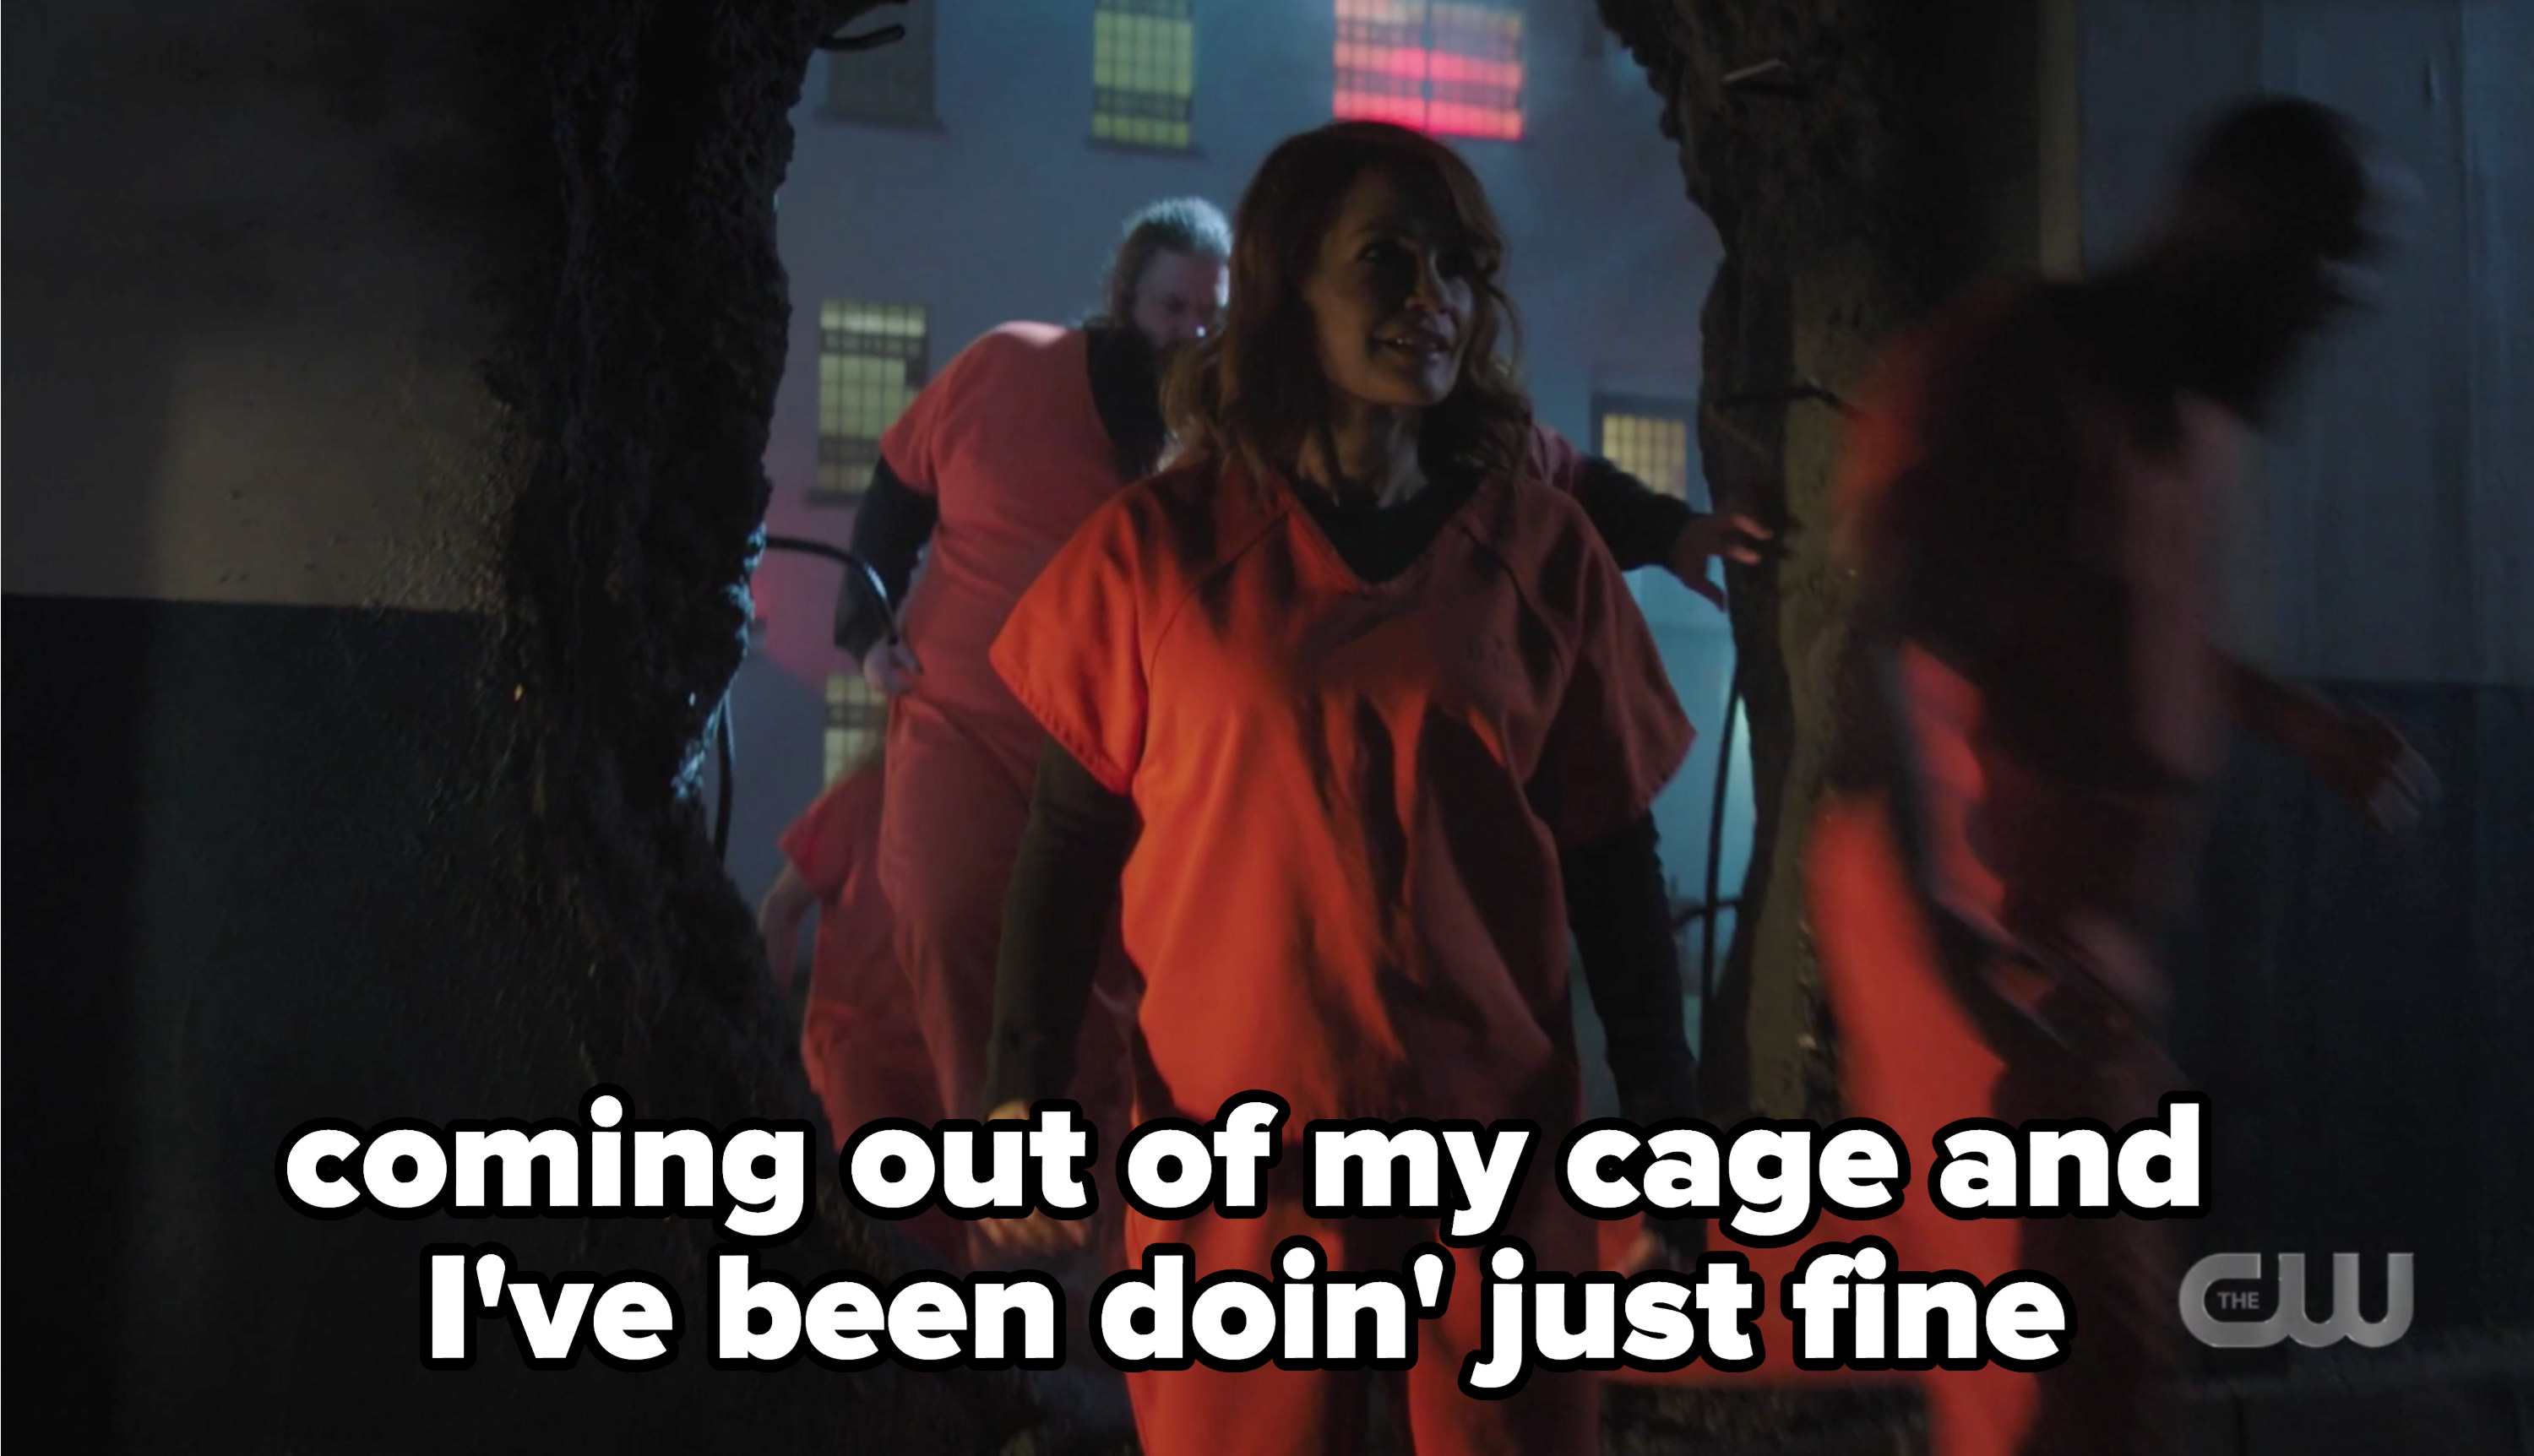 Penelope coming out of prison with the caption coming out of my cage and I've been doin just fine